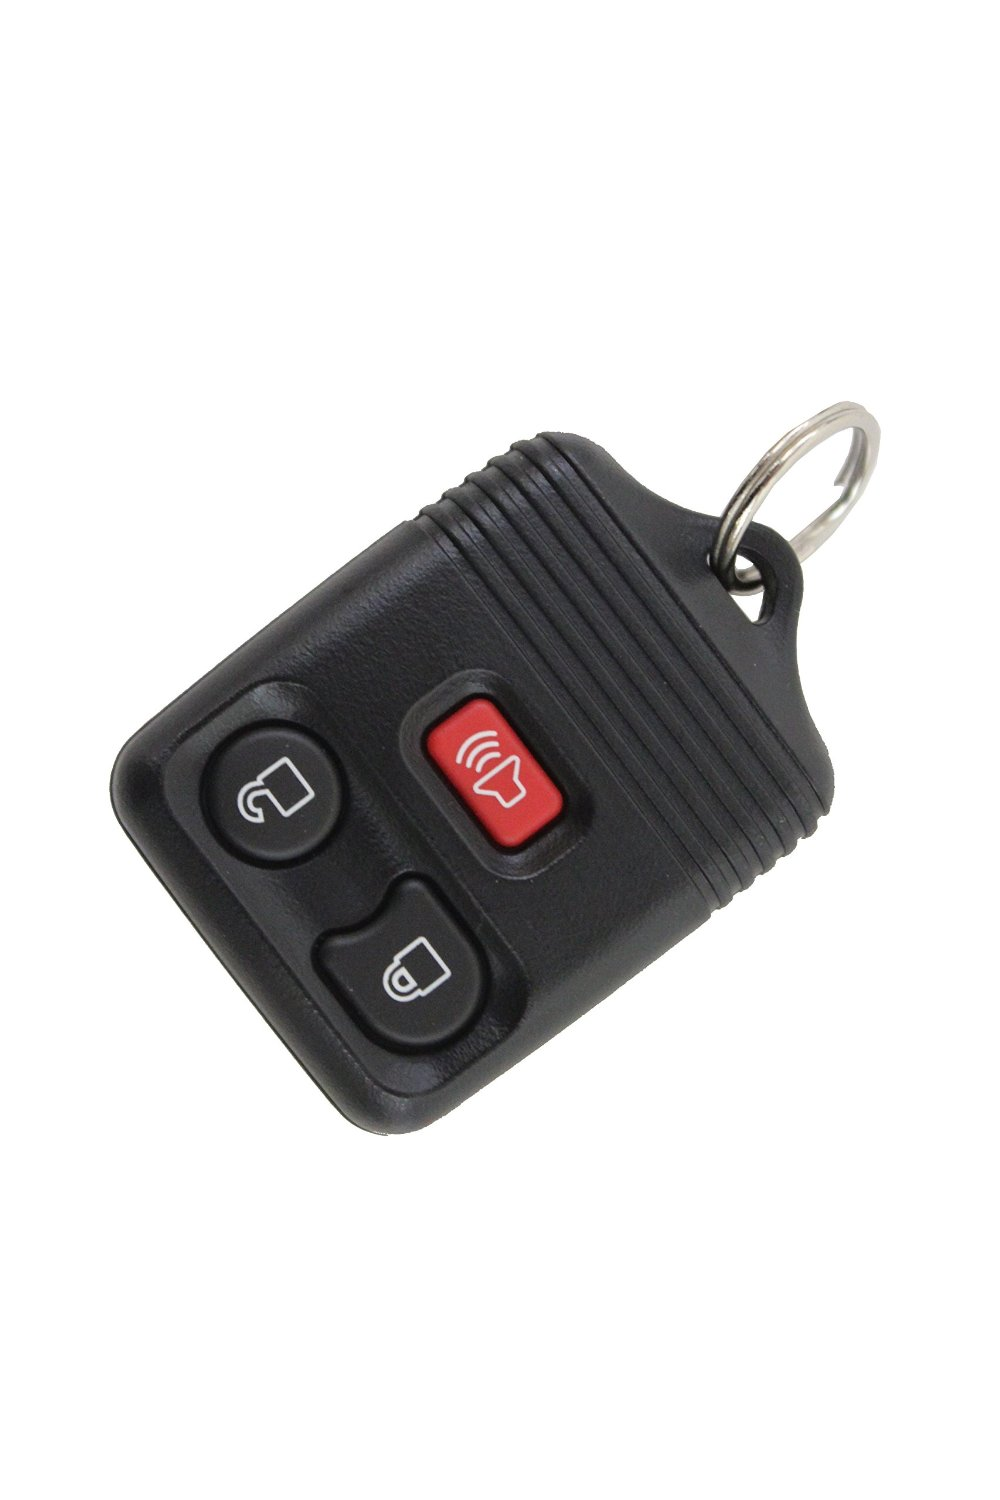 Ford Vehicle Keyless Entry Systems